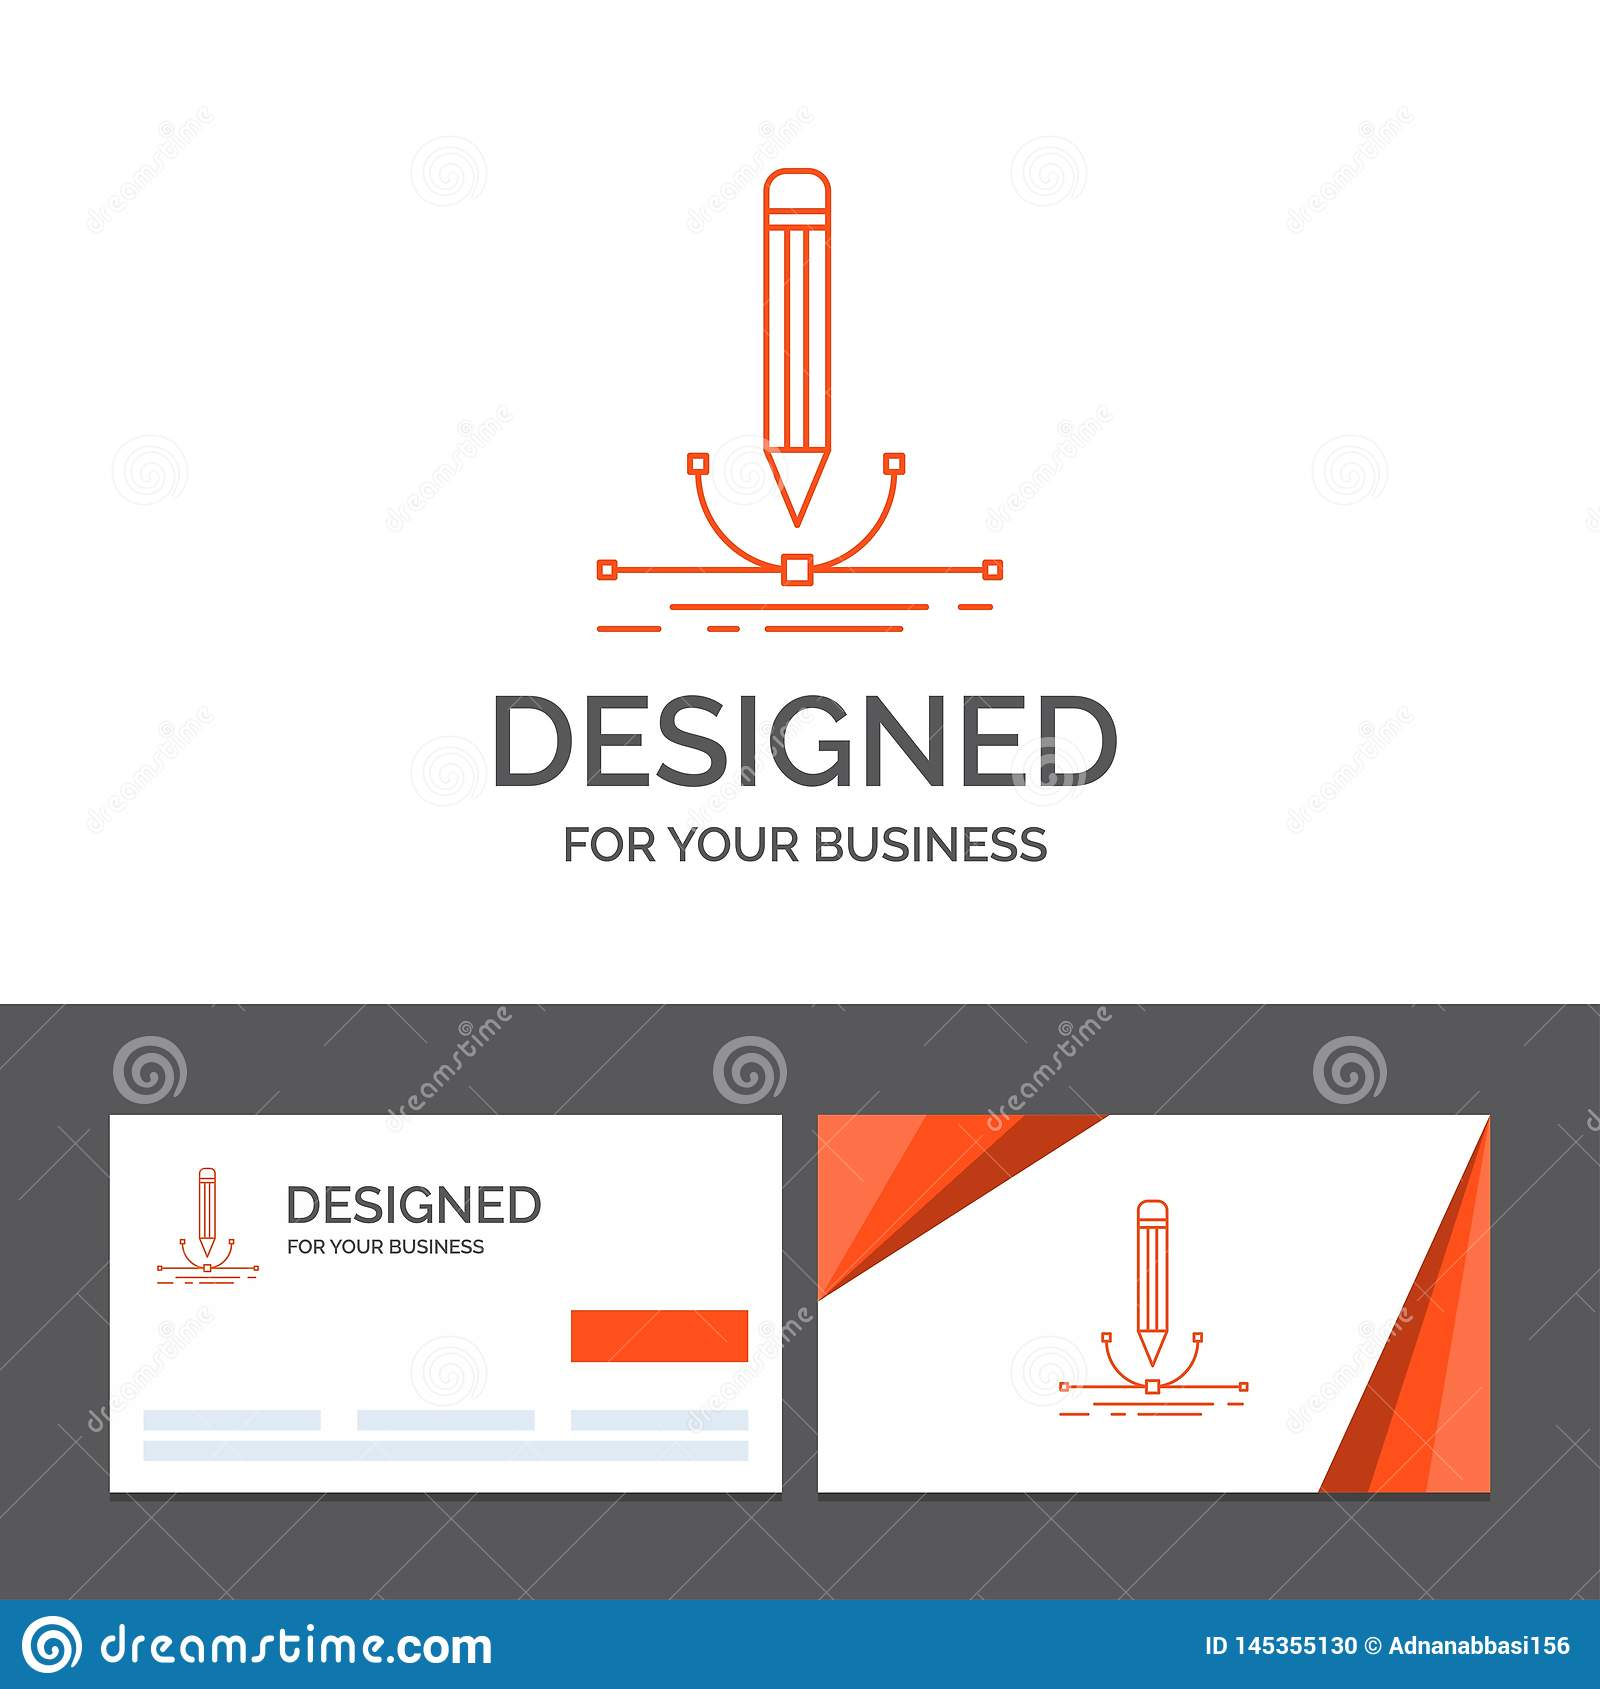 Business logo template for illustration, design, pen, graphic, draw. Orange Visiting Cards with Brand logo template. Vector EPS10 Abstract Template background stock photo